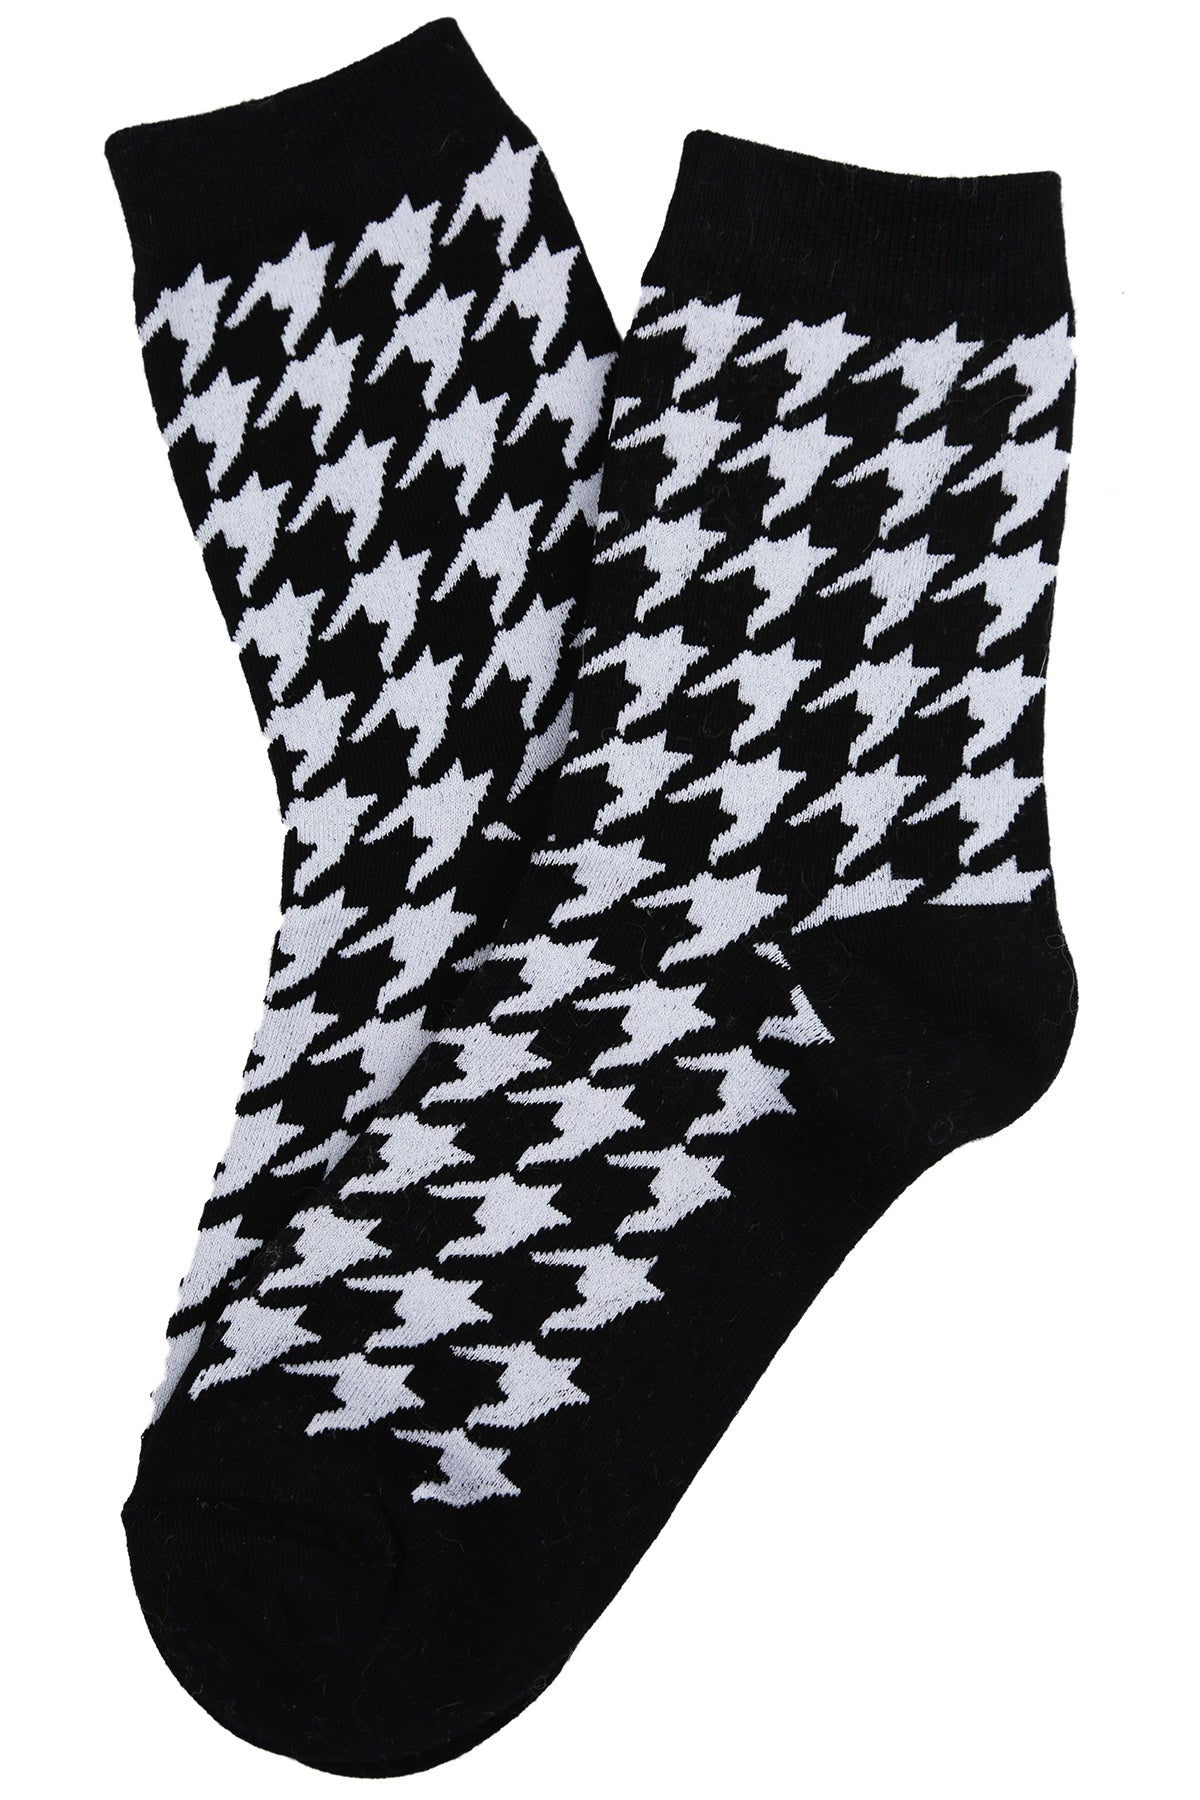 Hilary Houndstooth Cotton Socks Black